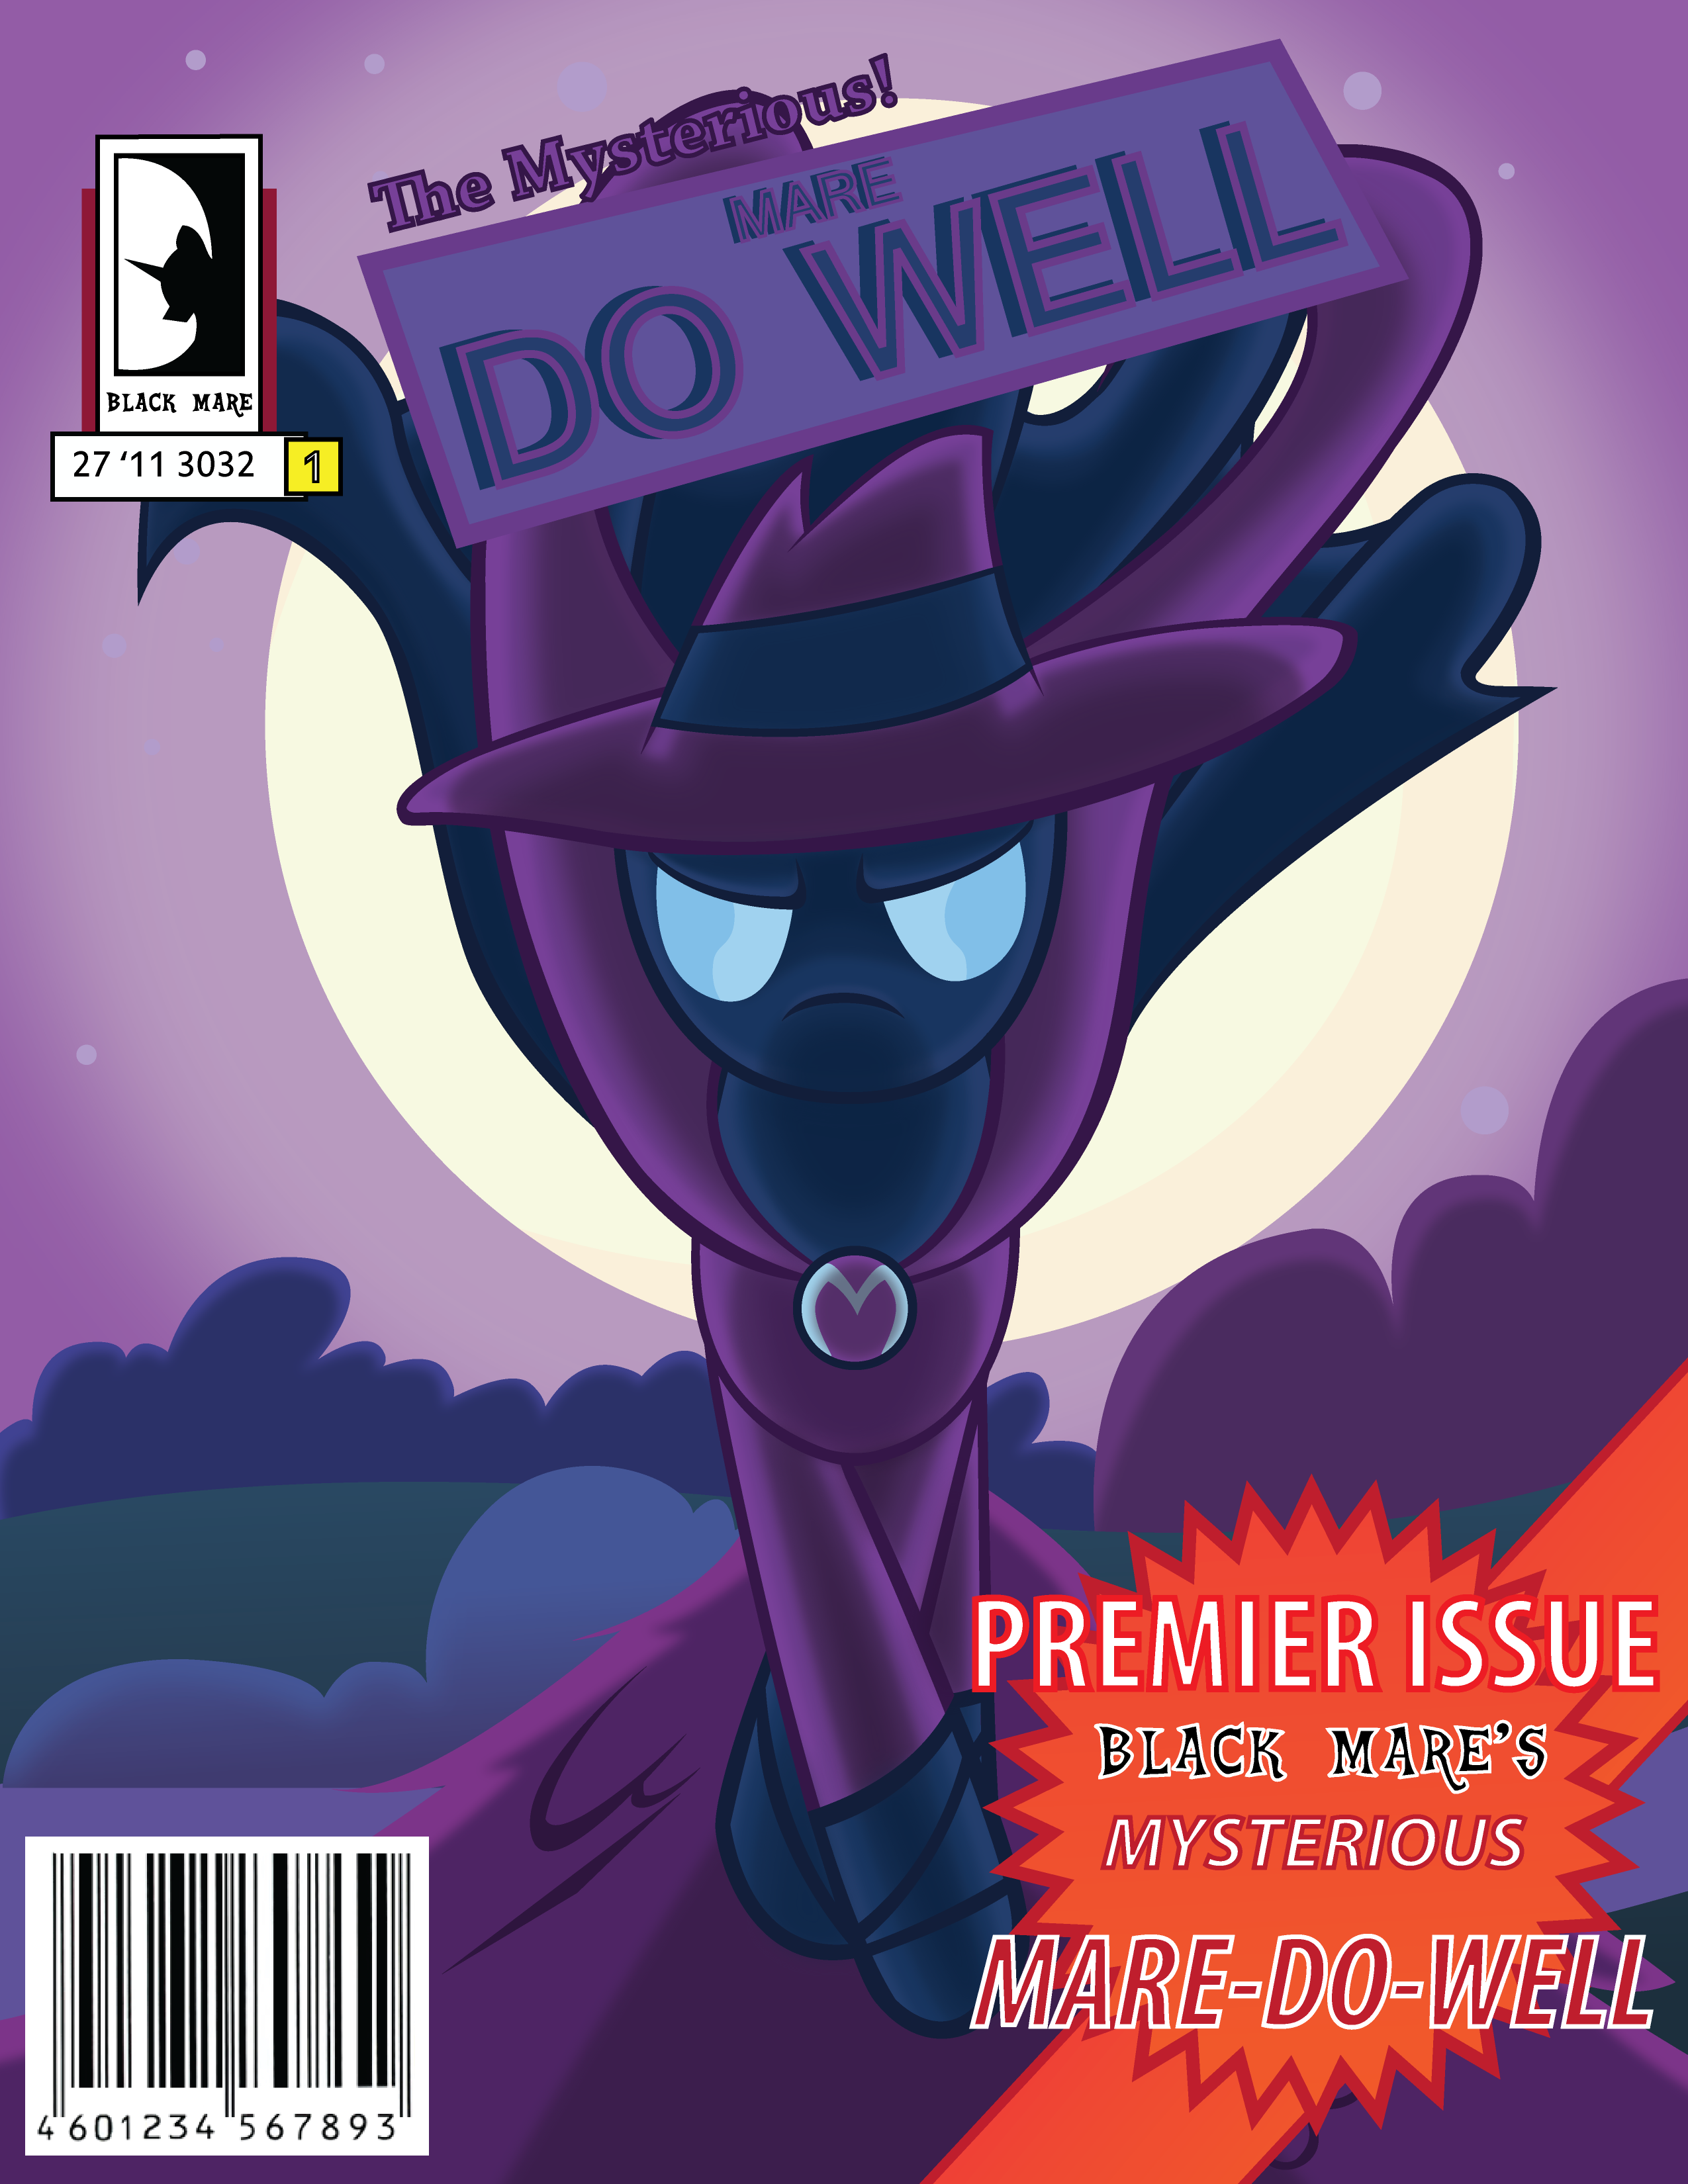 Mysterious Mare Do Well Premier Issue by MikeTheUser